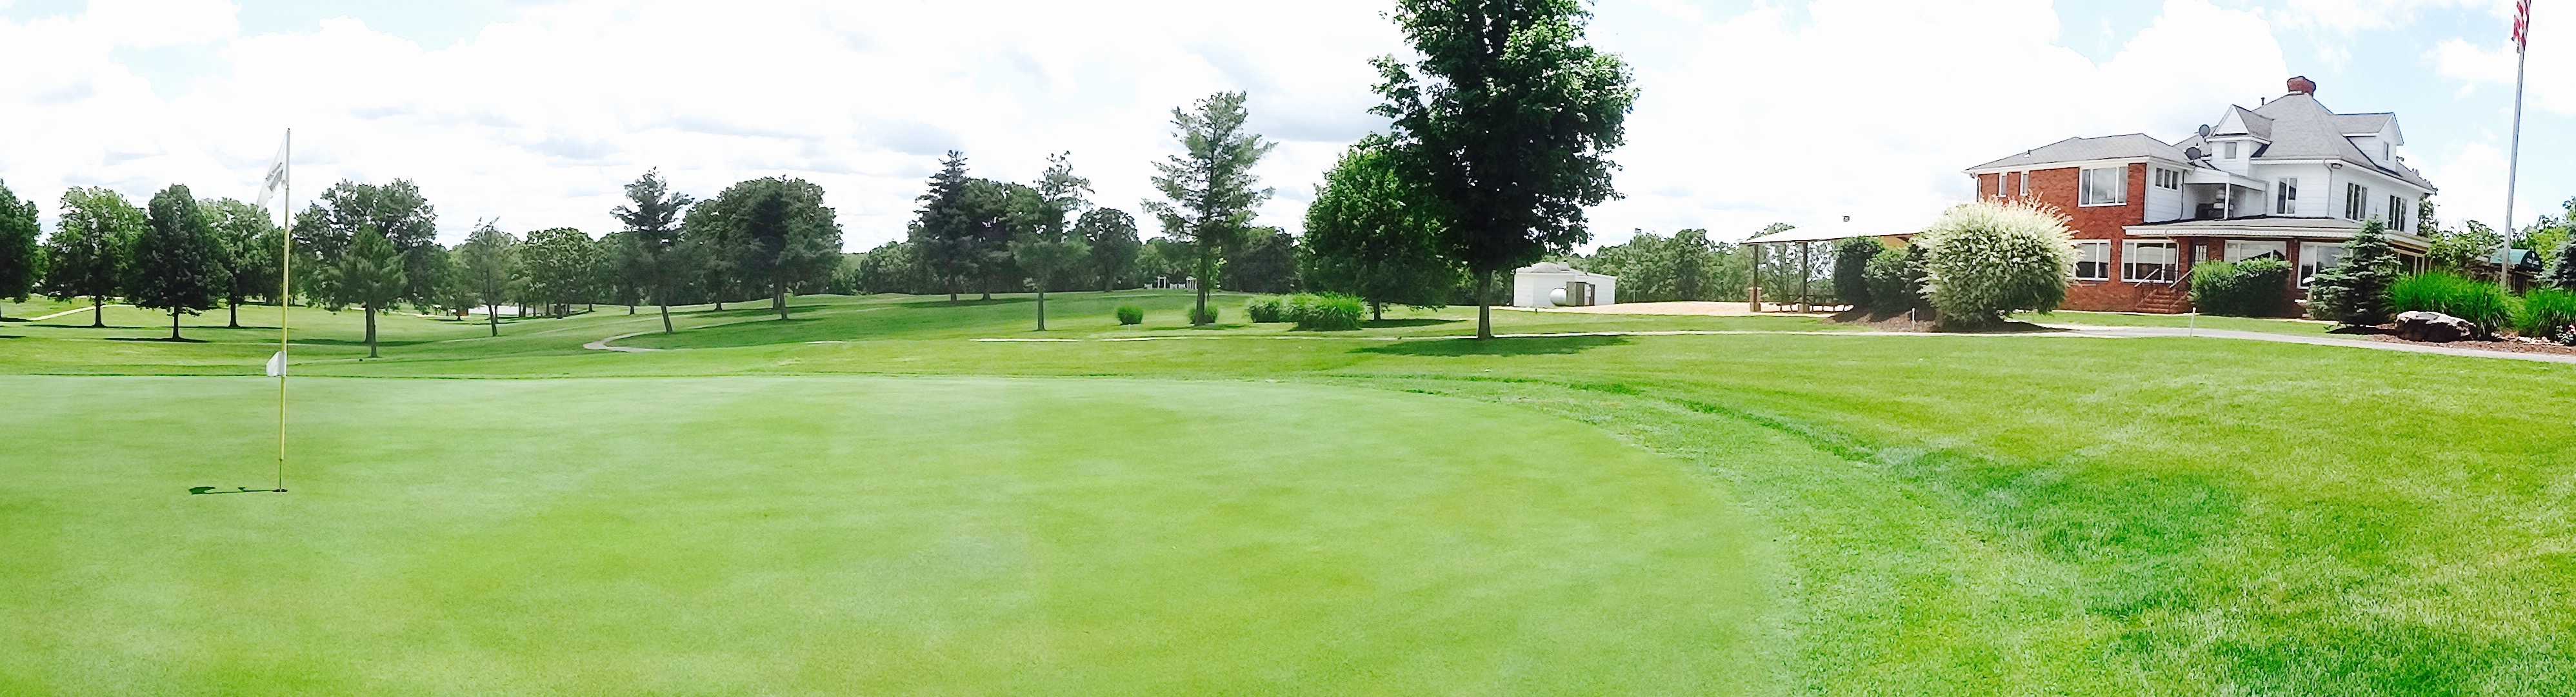 The Cuba Lakes Golf Course provided a setting for dining and recreation.